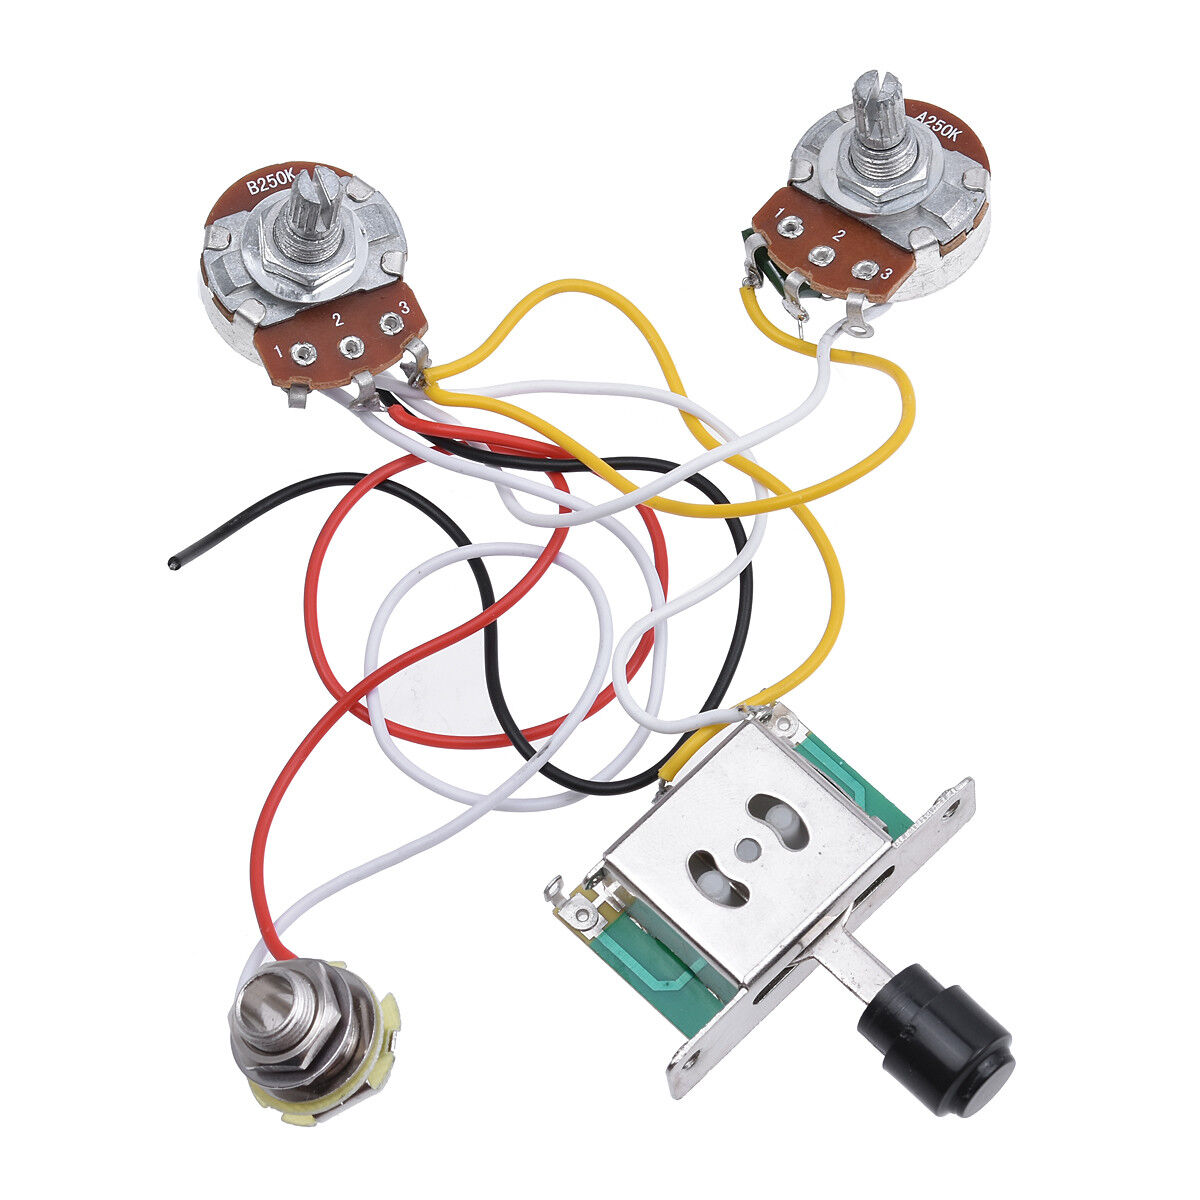 hight resolution of details about guitar prewired wiring harness for fender tele parts 3 way toggle switch 250k